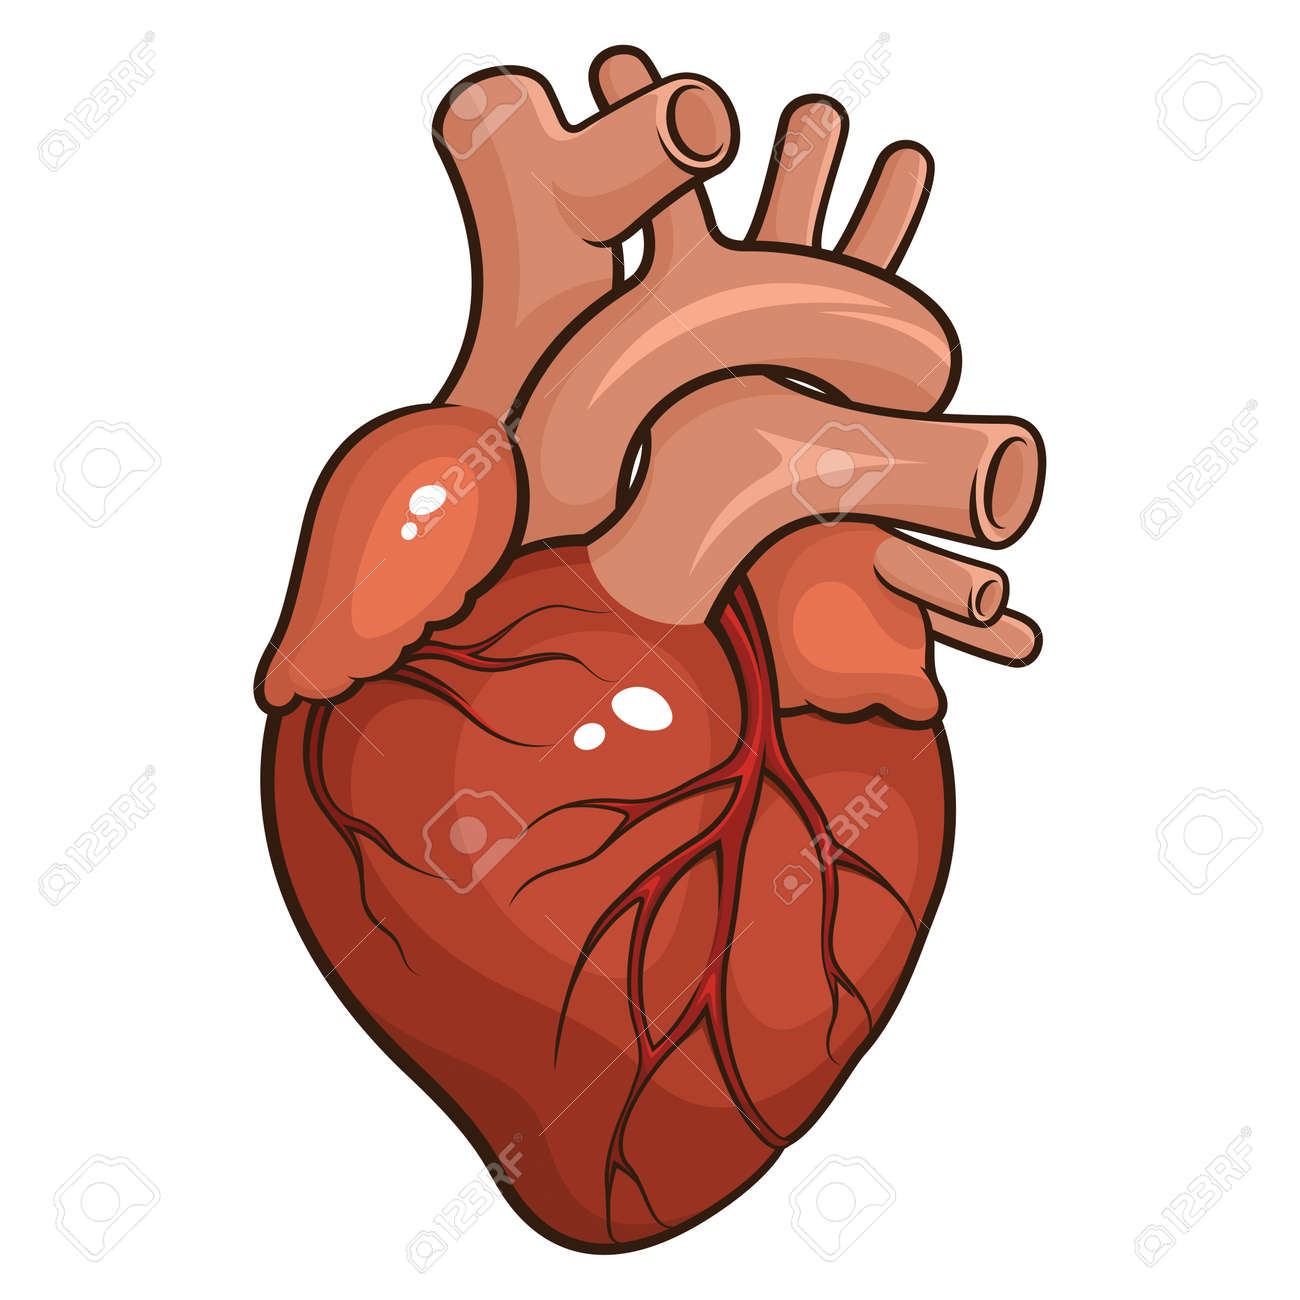 Vector illustration of a Human Heart isolated on a white background - 27440866